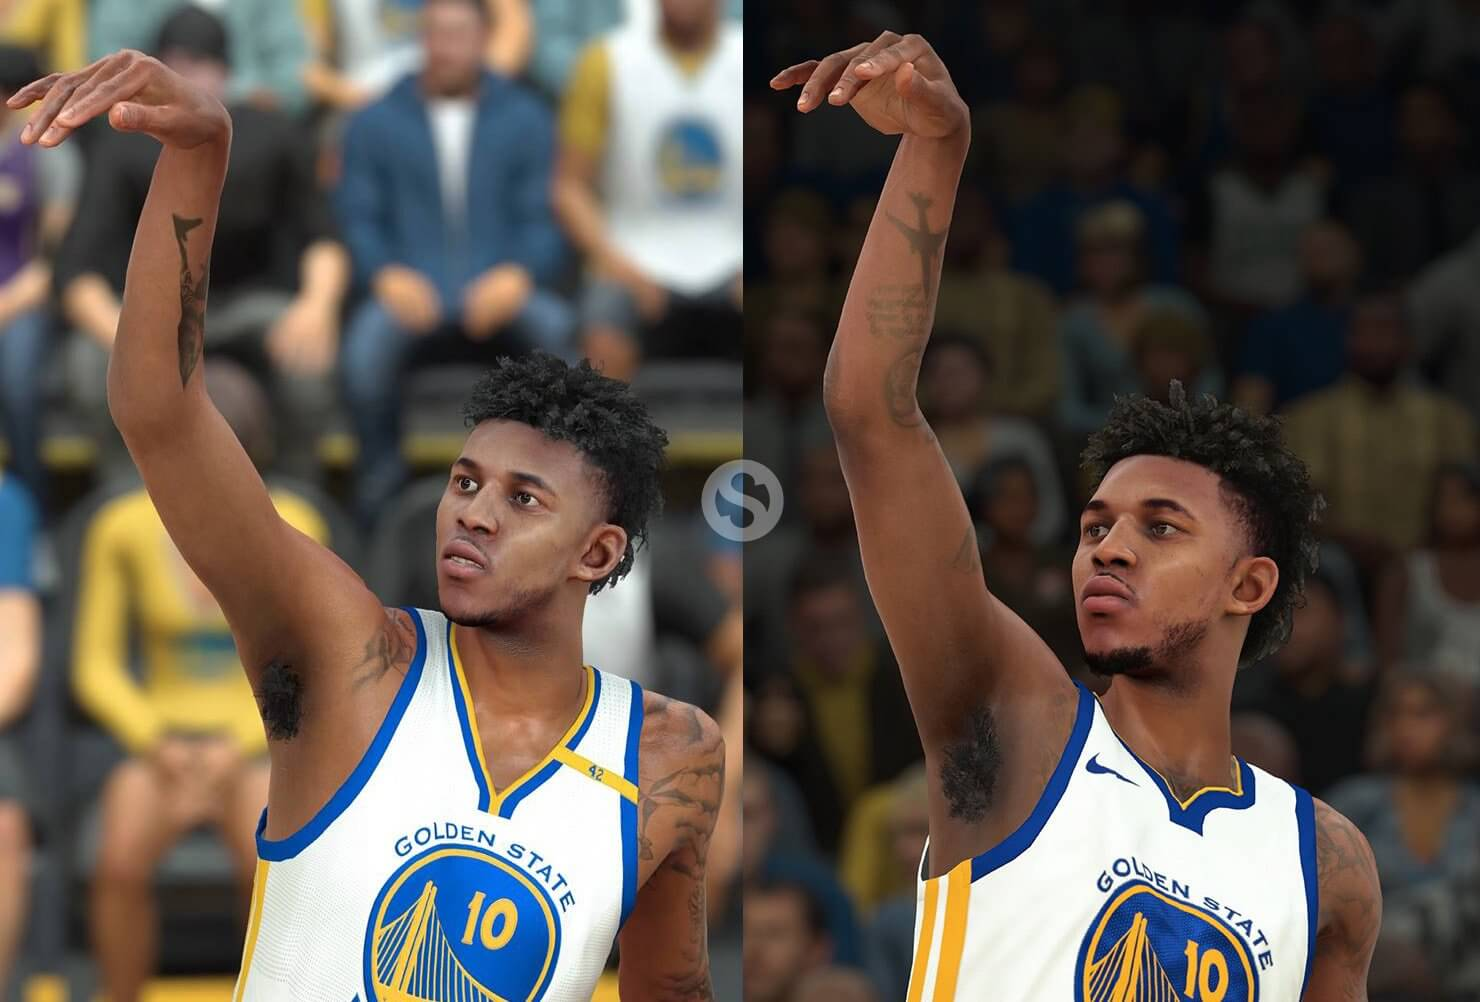 NBA 2k18 NBA 2k17 Screenshot Comparison - Nick Young